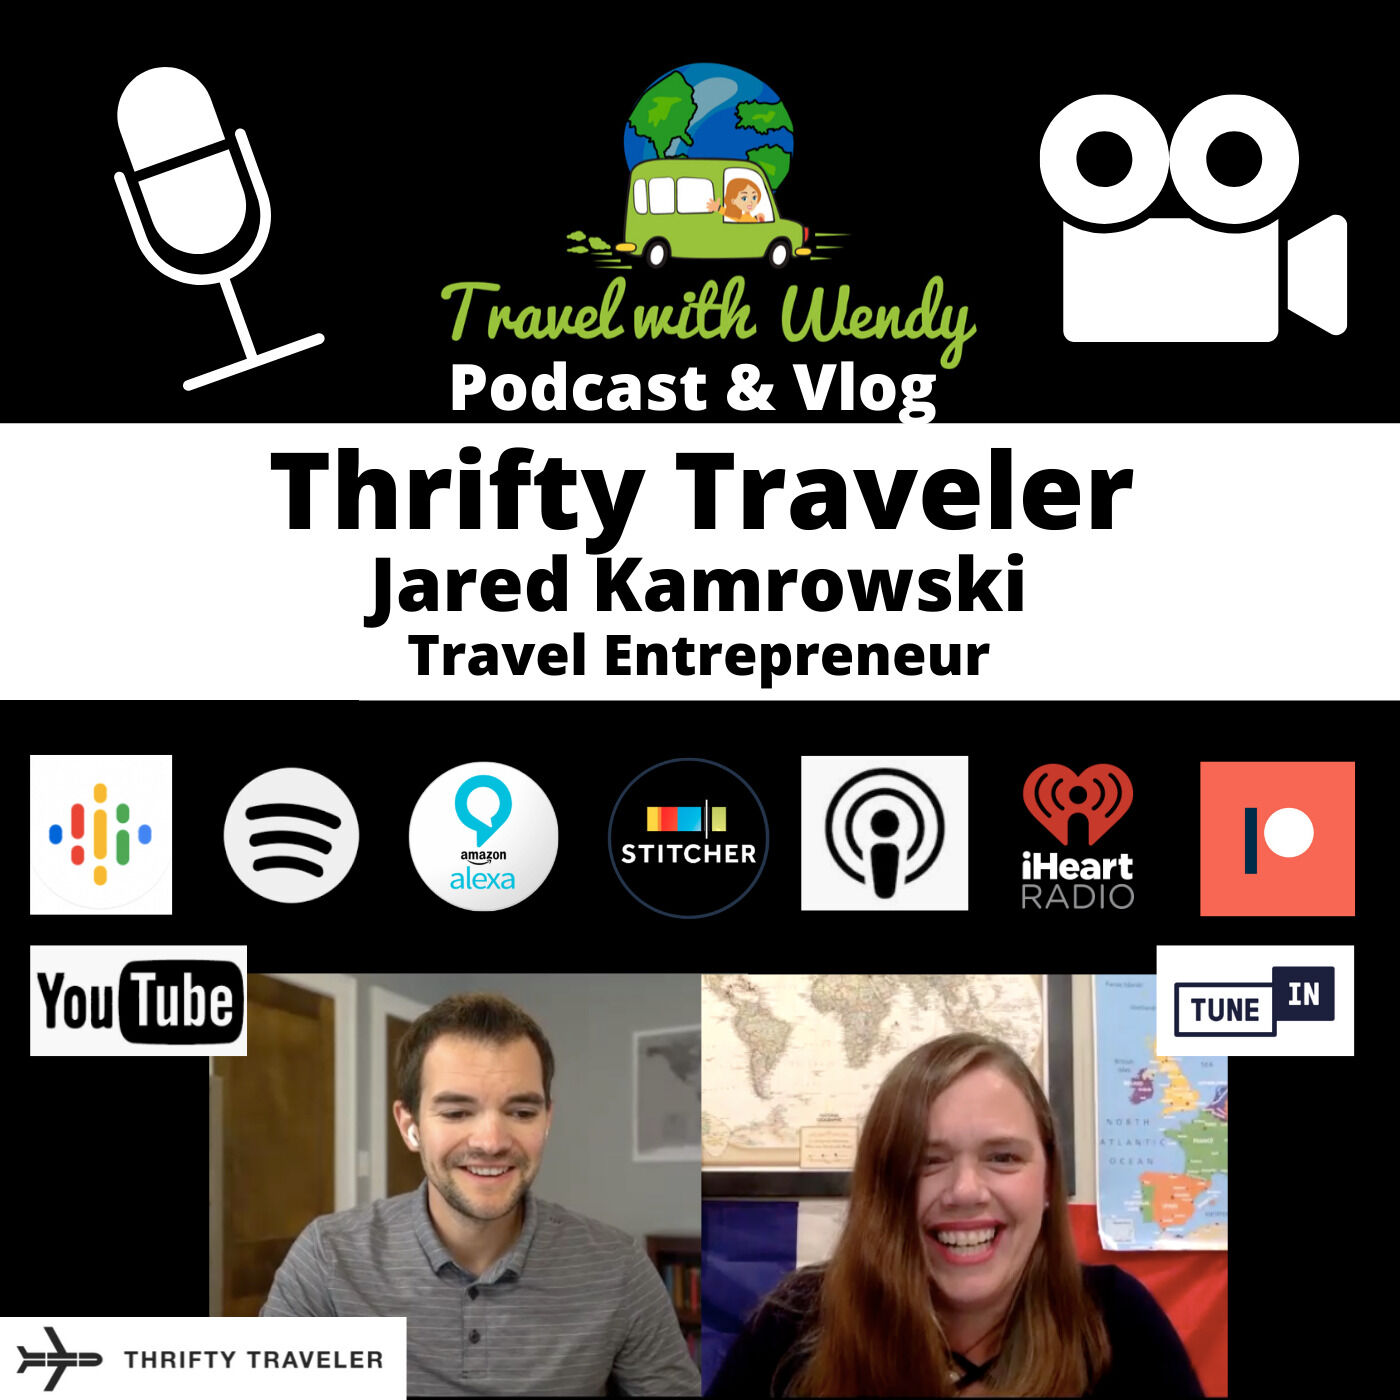 #19 Talking Travel with the Thrifty Traveler - Jared Kamrowski